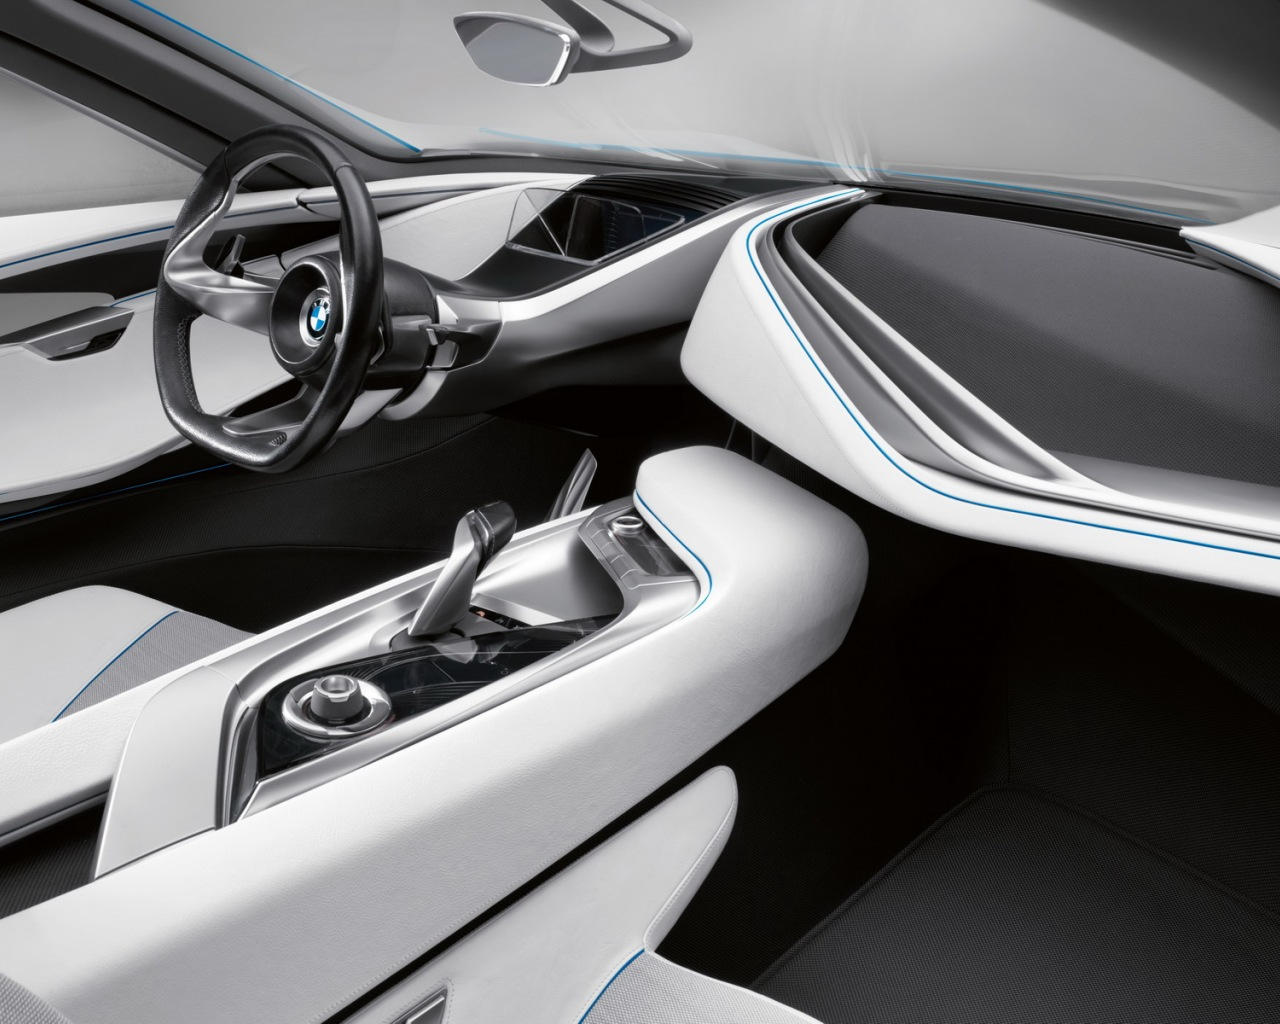 bmw-vision-efficientdynamics-37.jpg